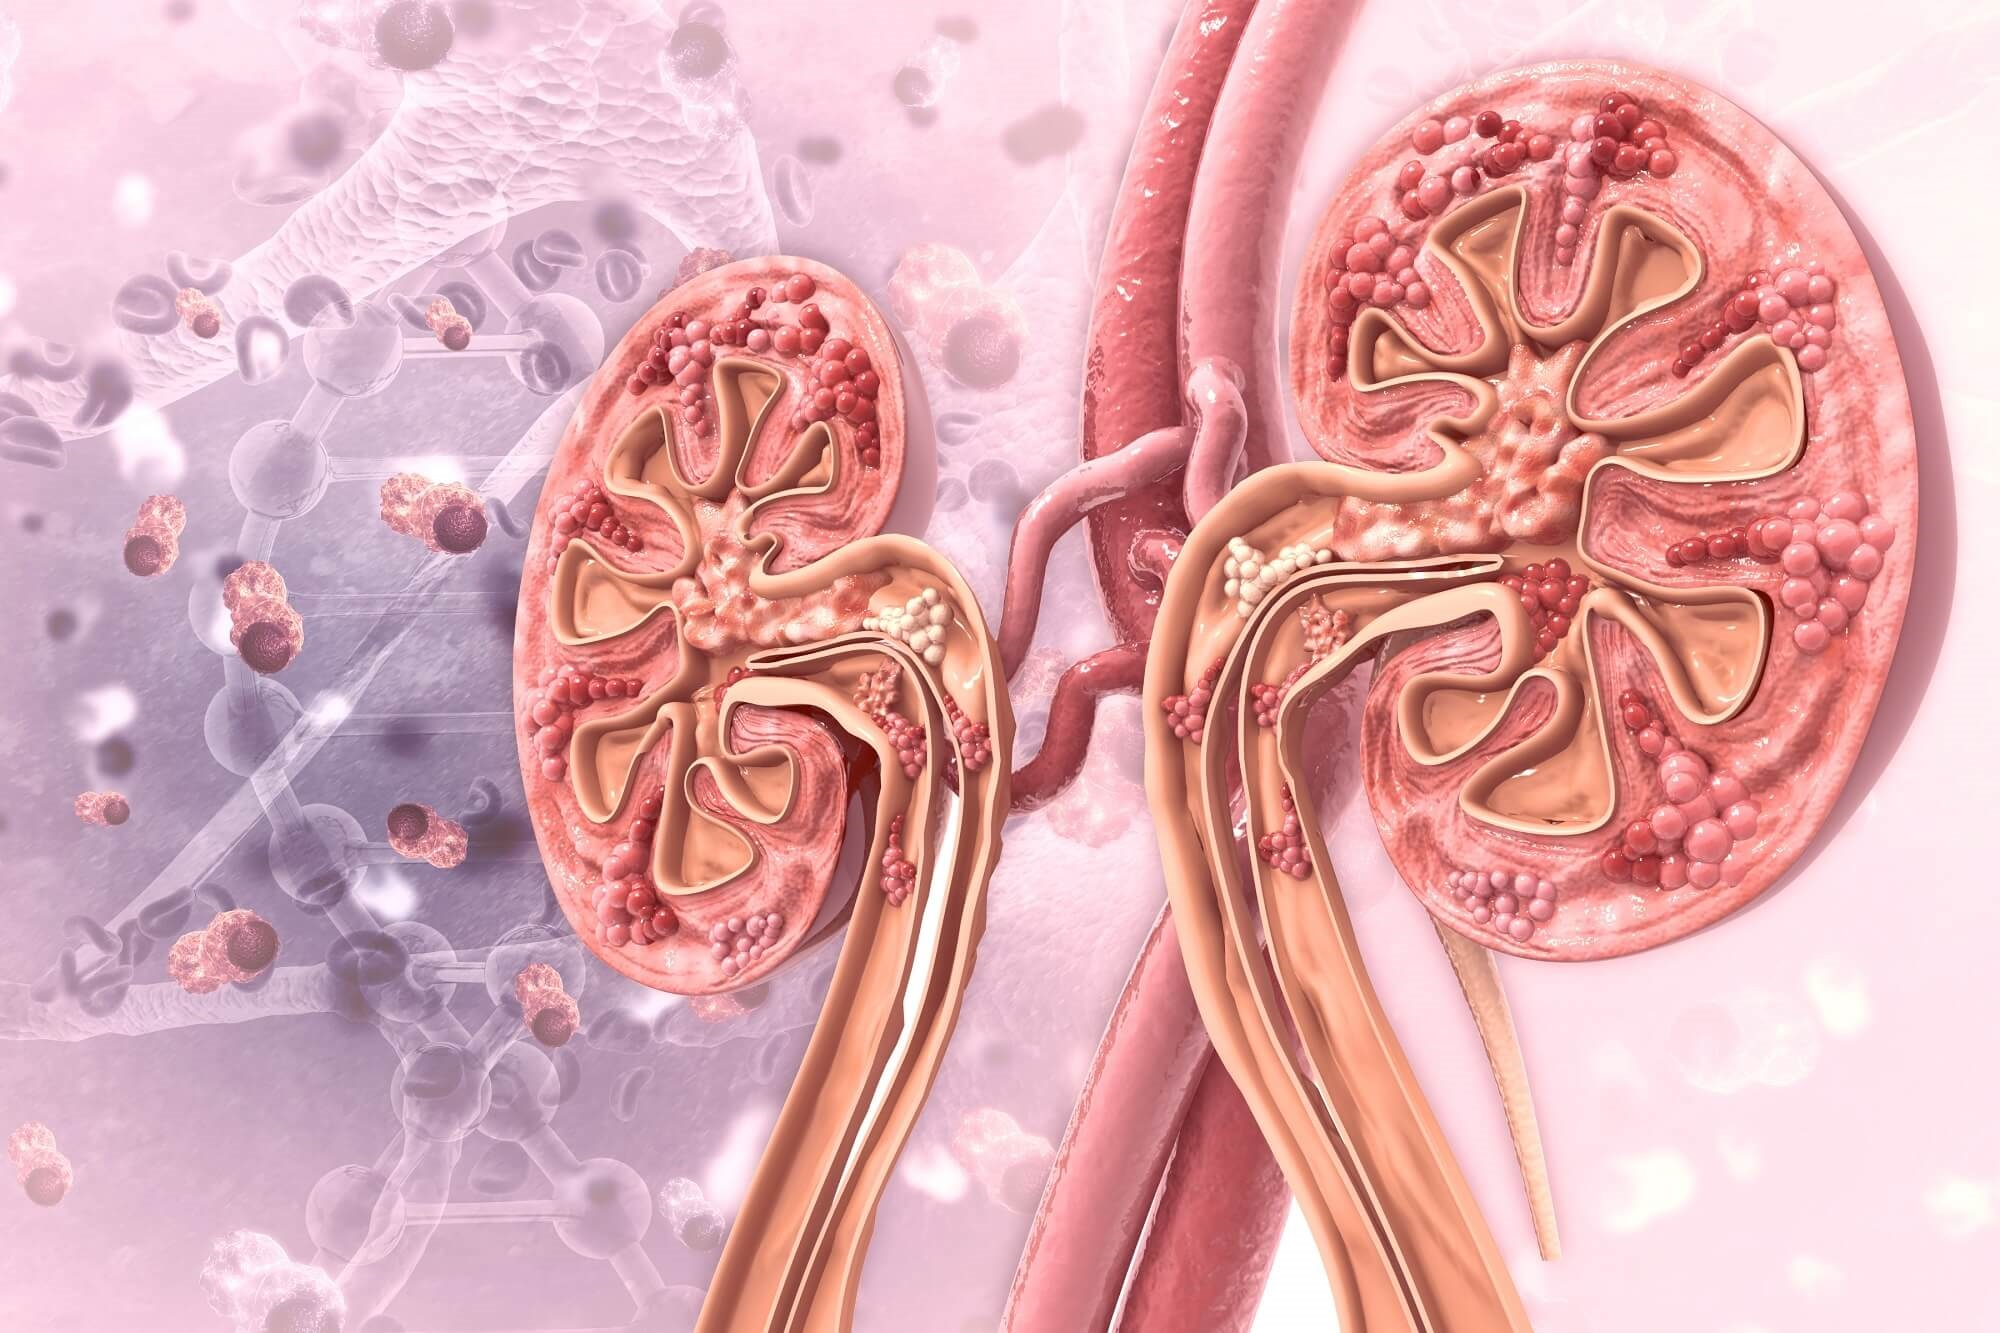 Gout Linked to Increased Risk for Chronic Kidney Disease - Renal and Urology News